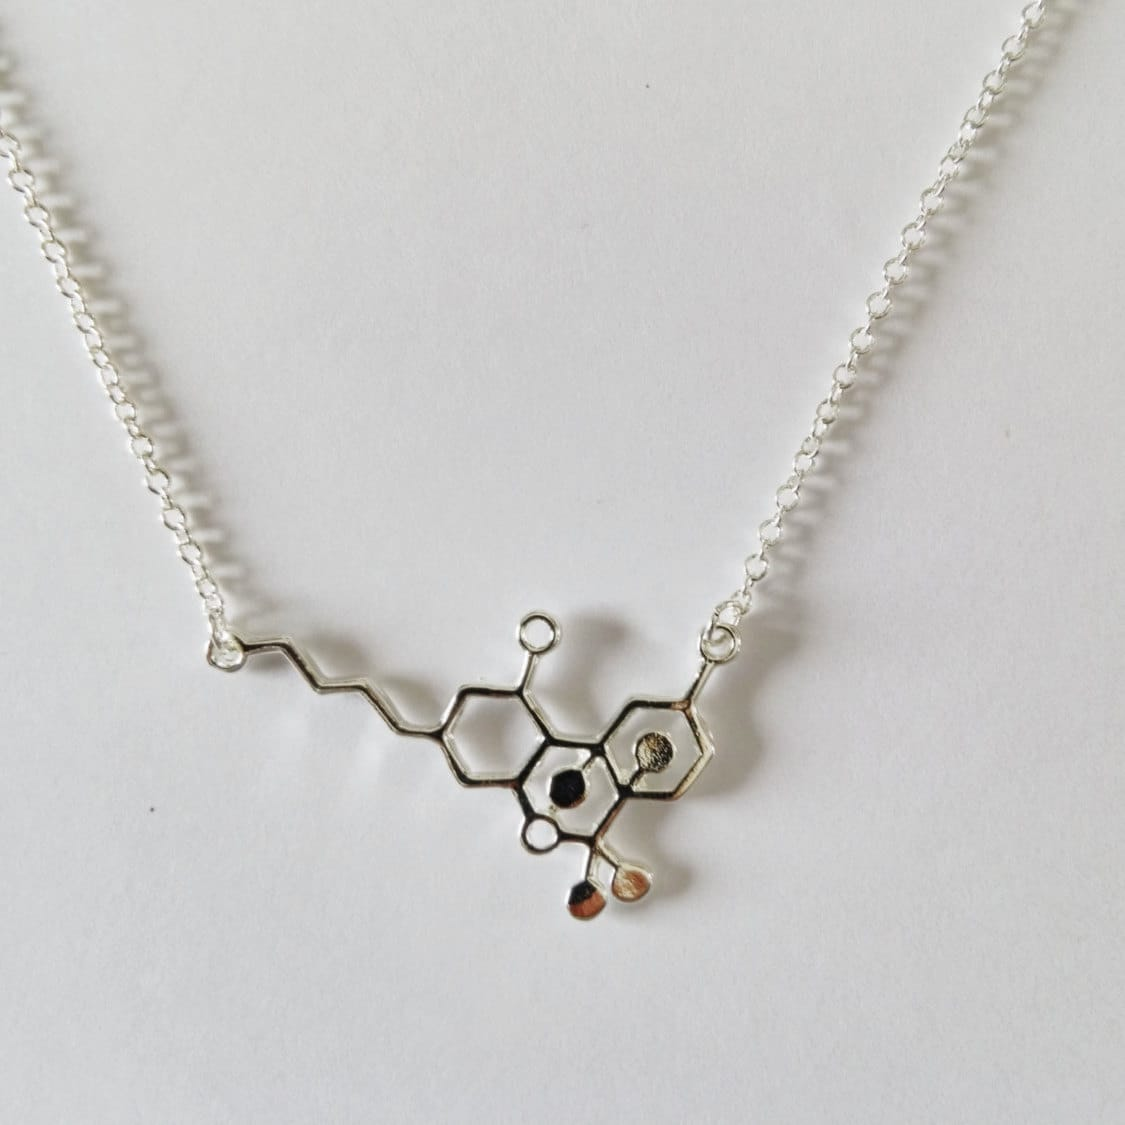 silver thc molecule necklace delicate chain by